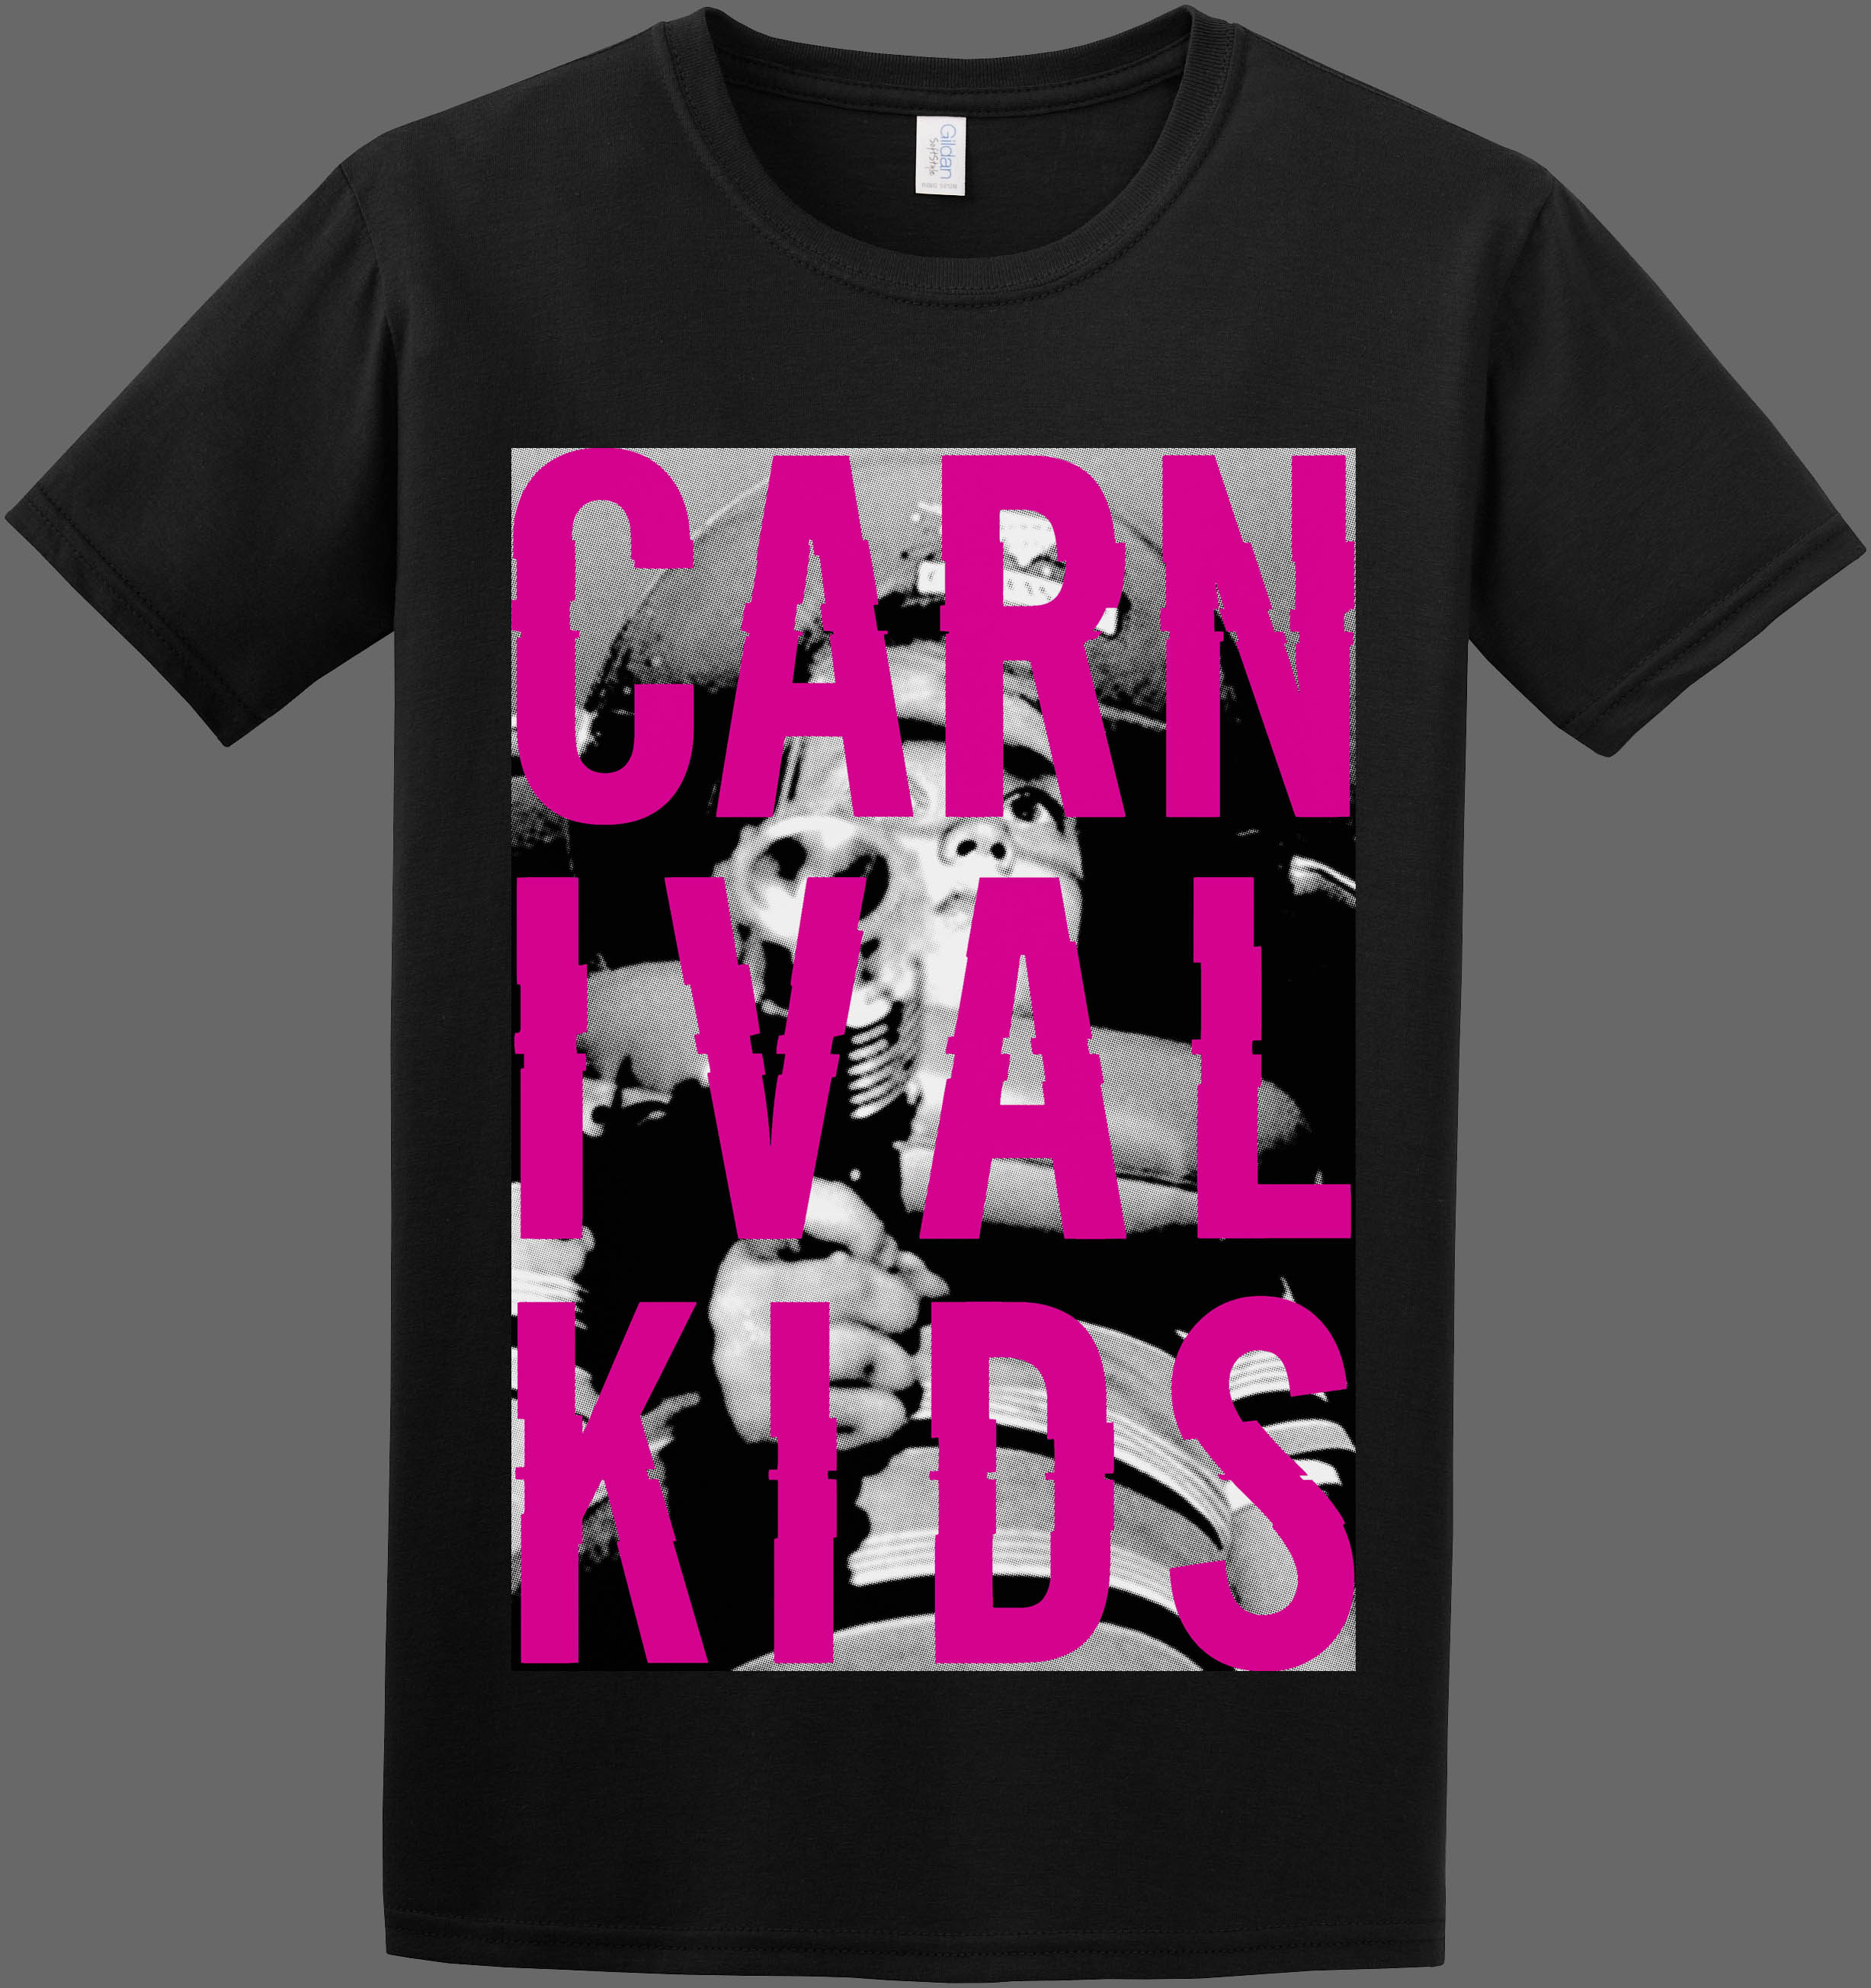 Carnival Kids - Venn Records - T-shirt